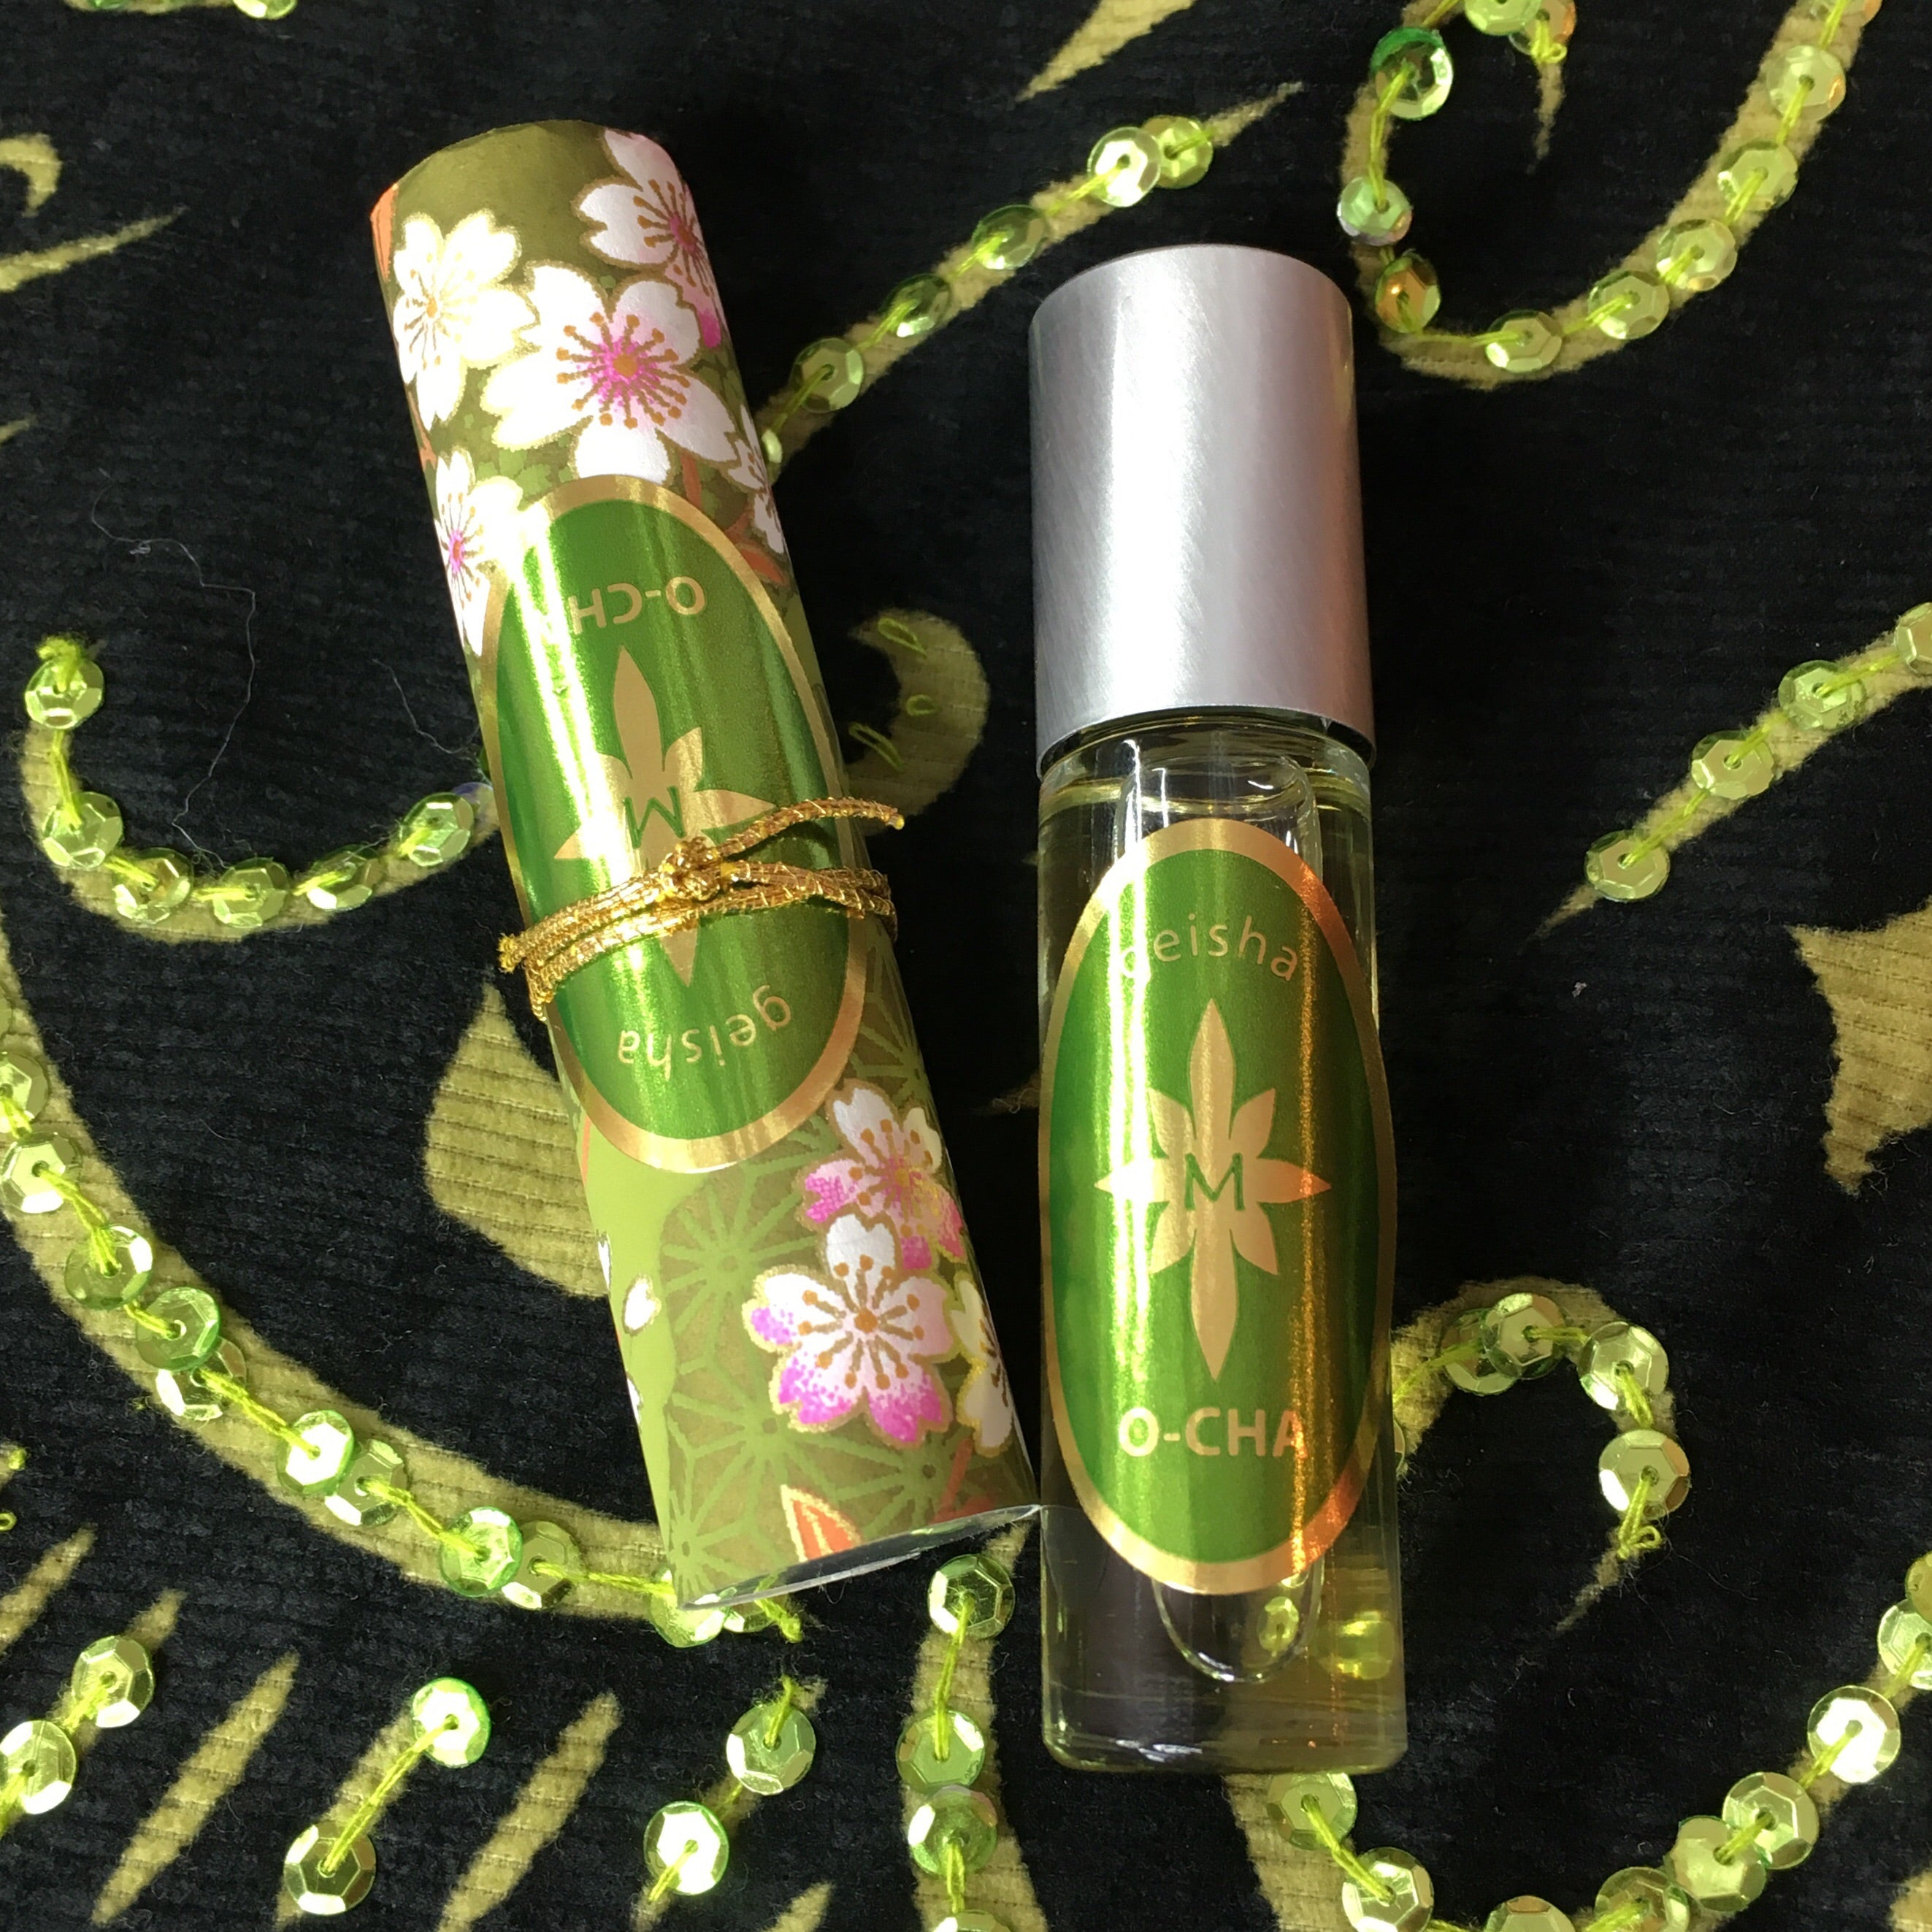 Geisha Roll-on Perfume Oils